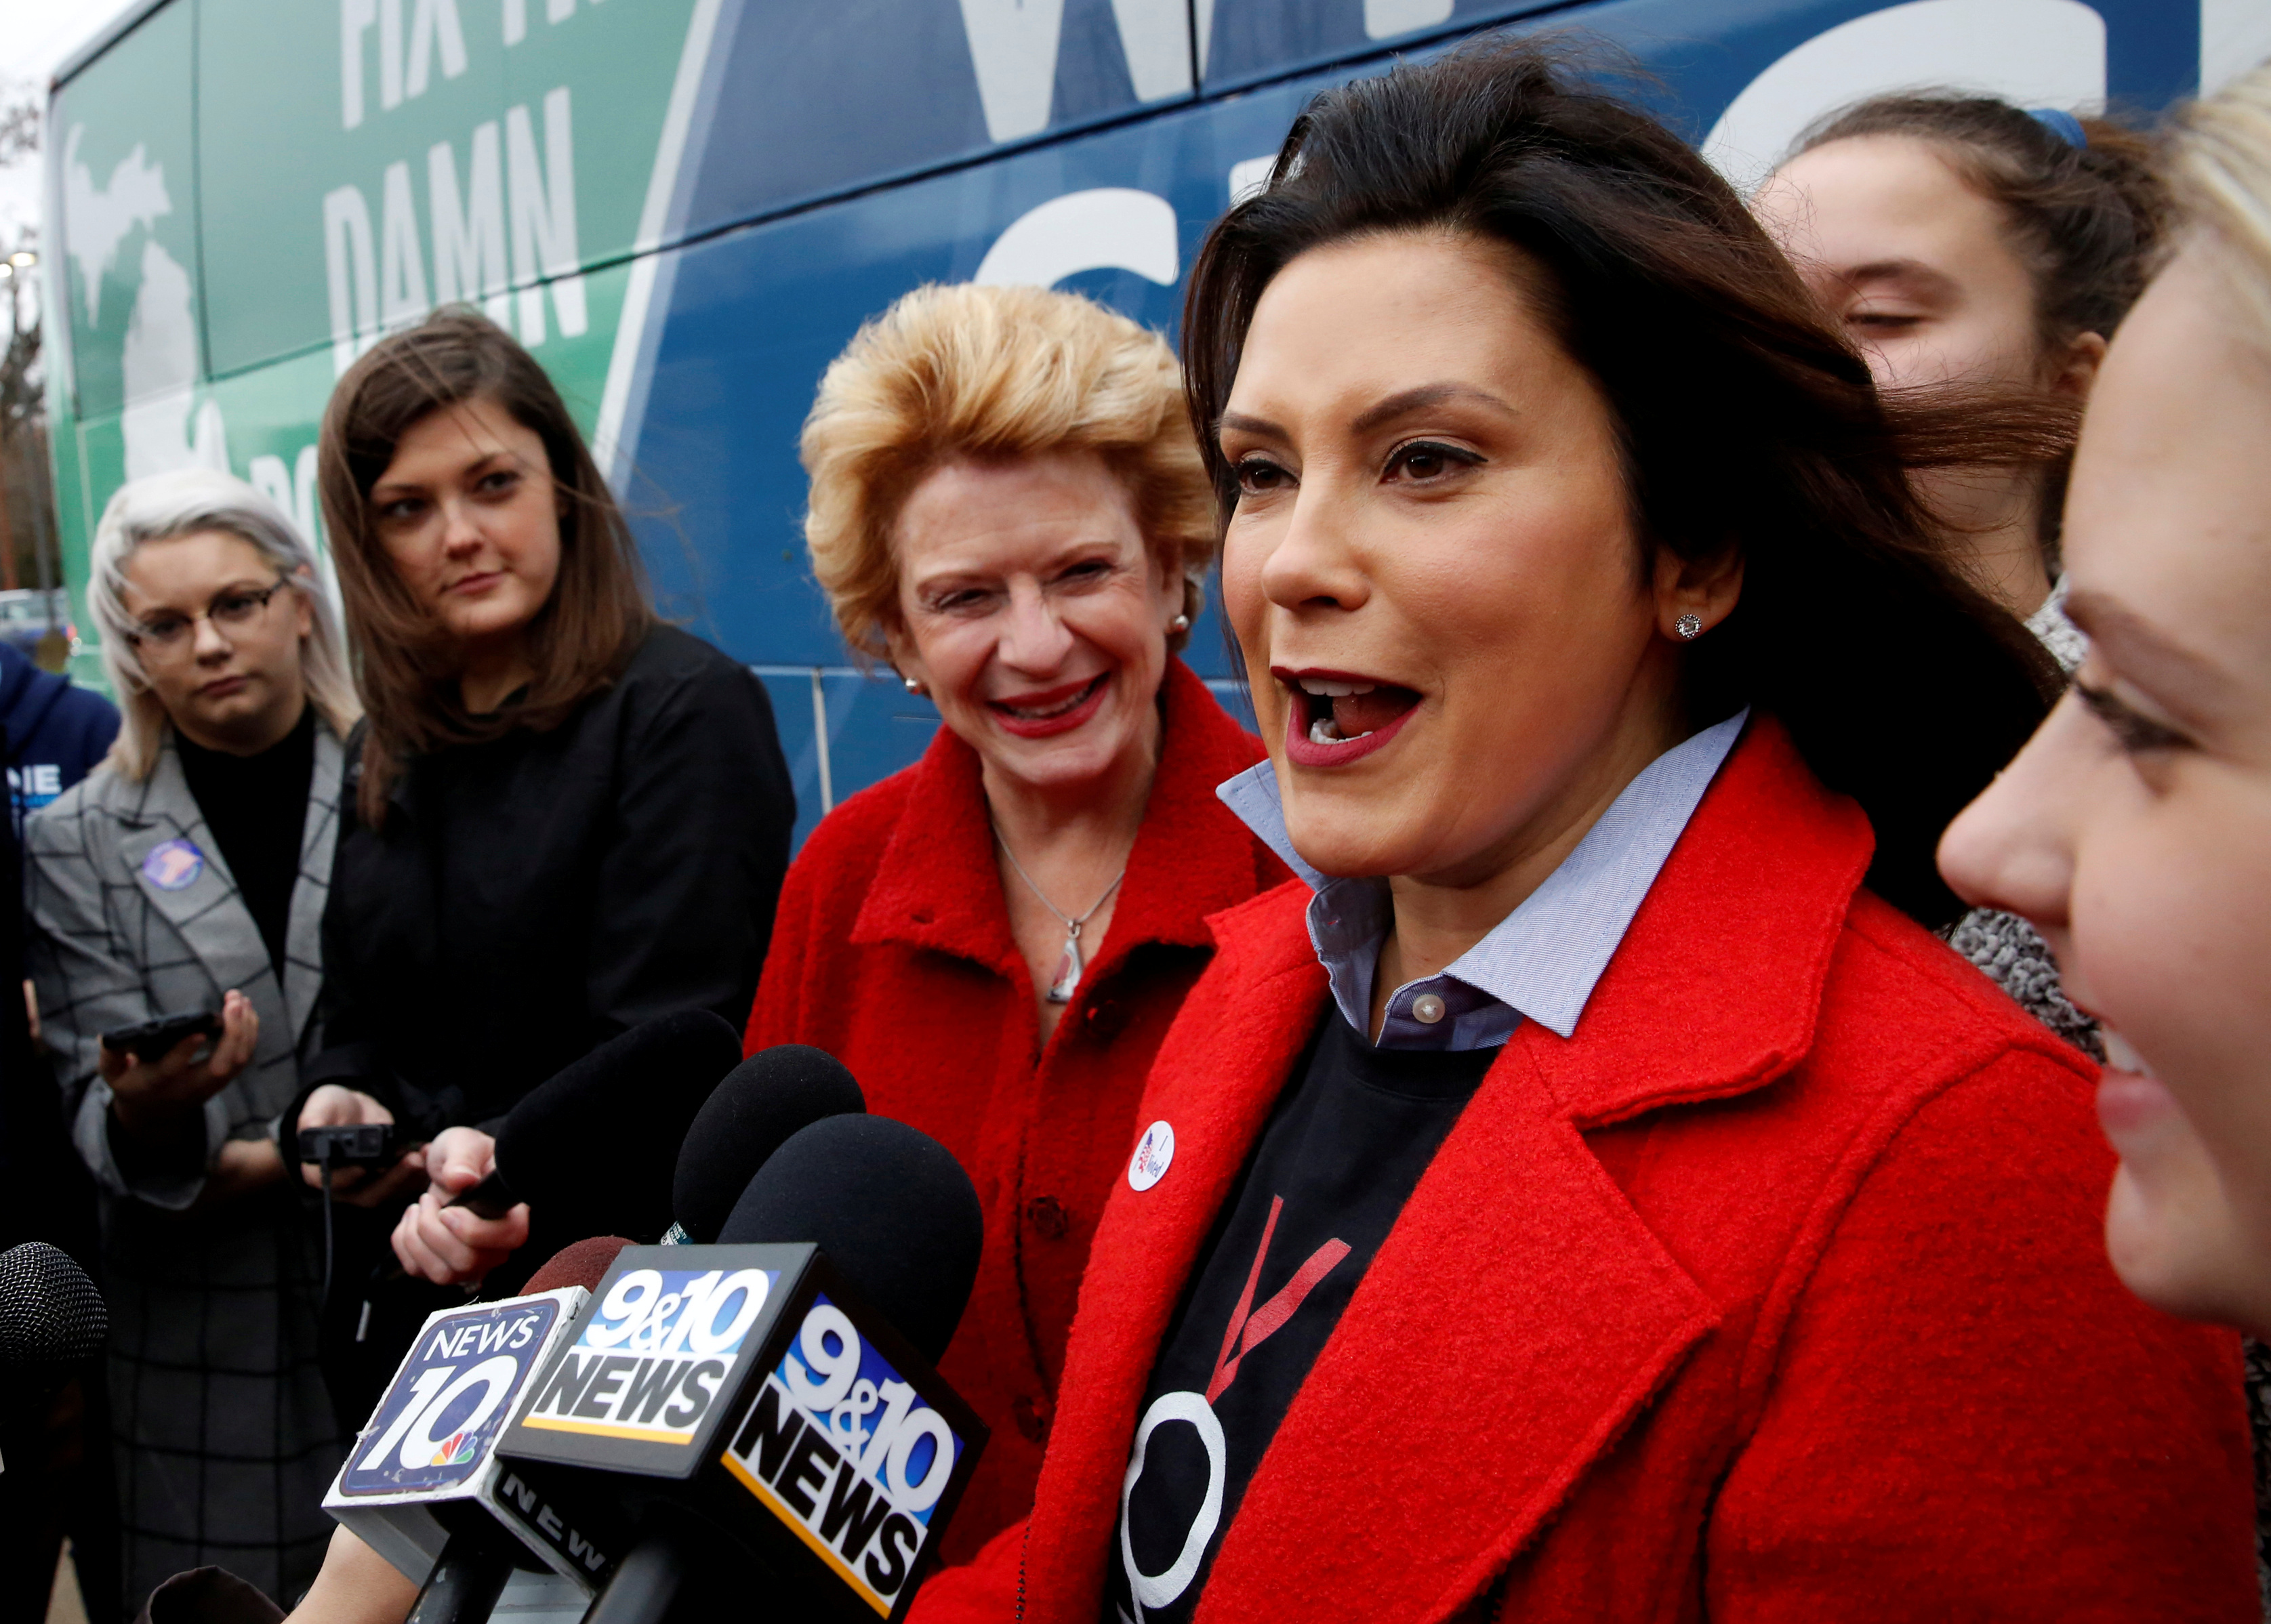 FILE PHOTO: Michigan Democratic gubernatorial candidate Gretchen Whitmer with U.S. Sen. Debbie Stabenow talk to reporters at polling station at the St. Paul Lutheran Church in East Lansing, Michigan, U.S. Nov. 6, 2018. REUTERS/Jeff Kowalsky/File Photo